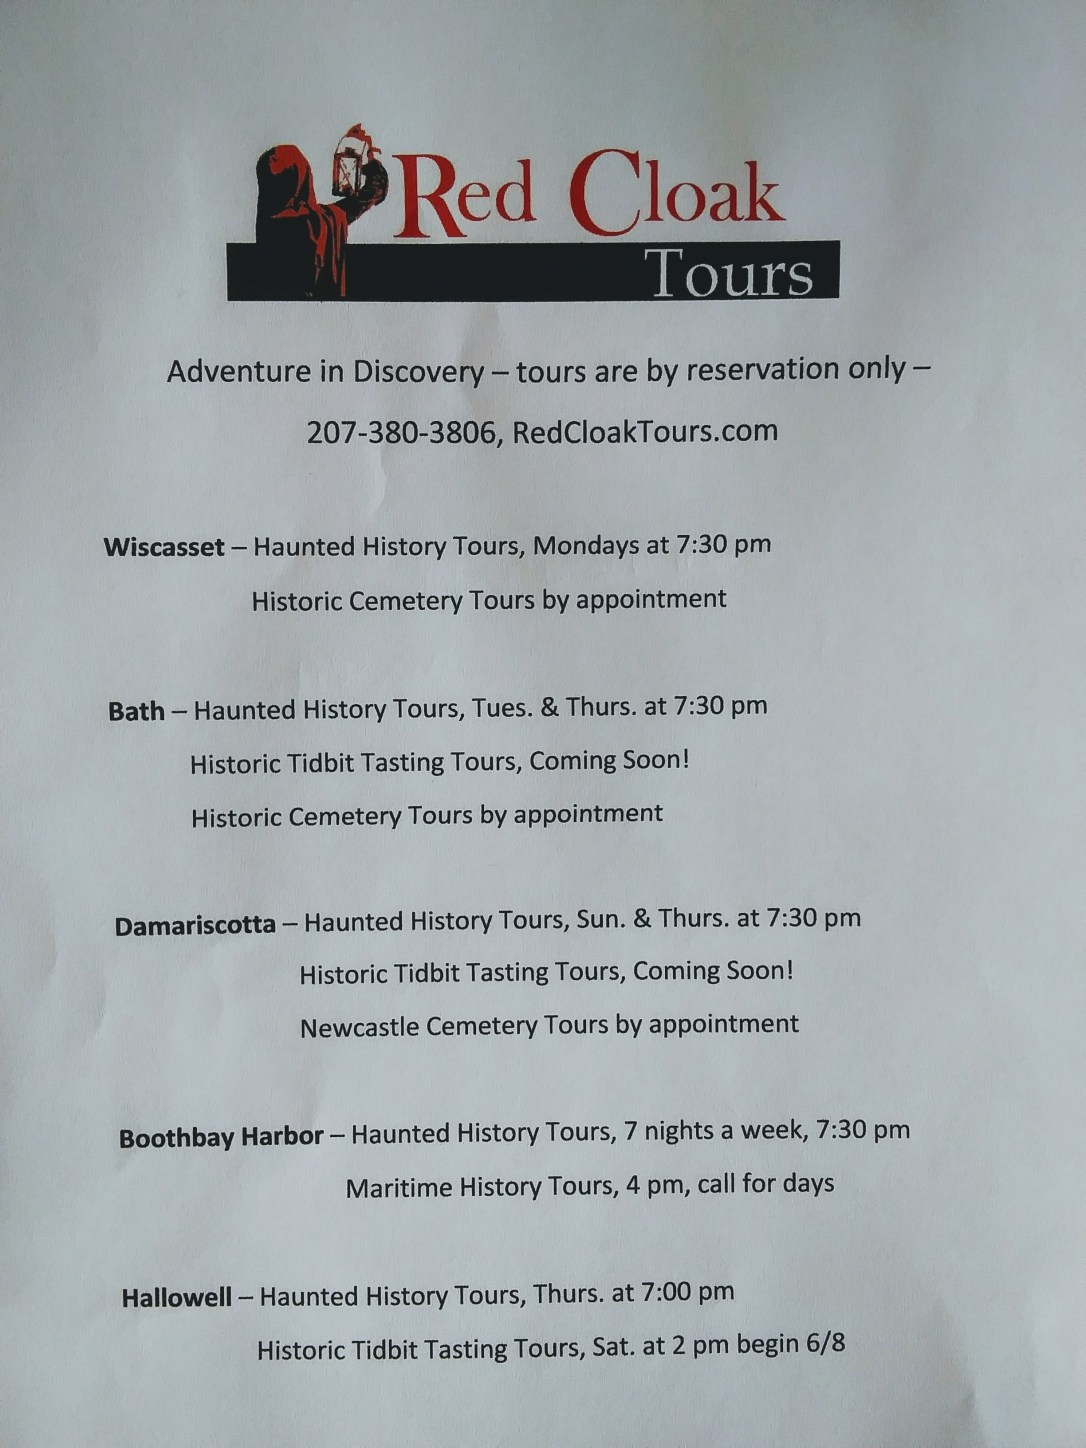 Schedule of Redcloak Tours Walking Tours in Midcoast Maine.